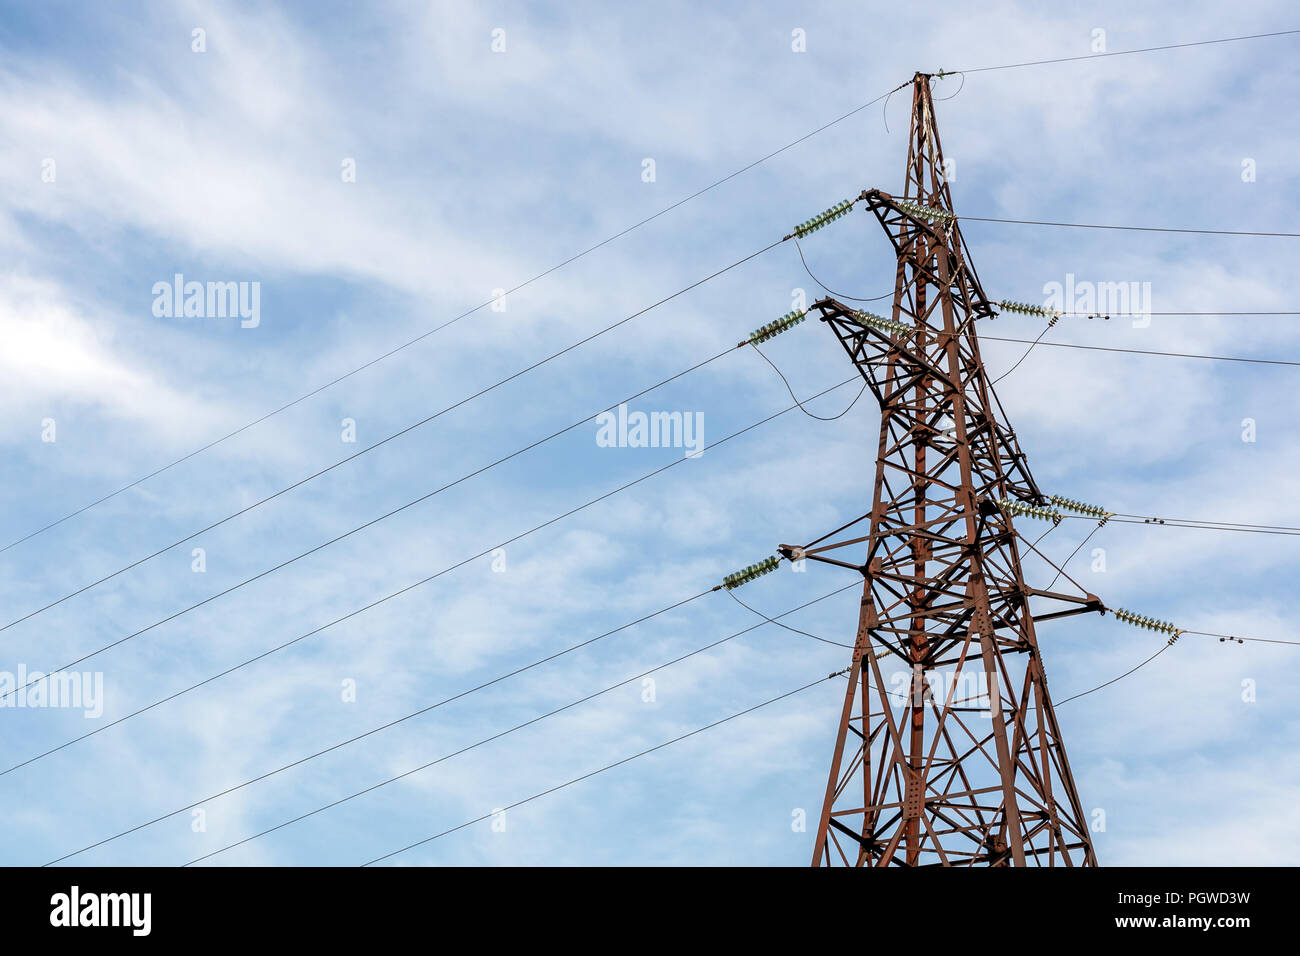 High-voltage electricity pylon with blue clear sky on background. Energy transmission. - Stock Image